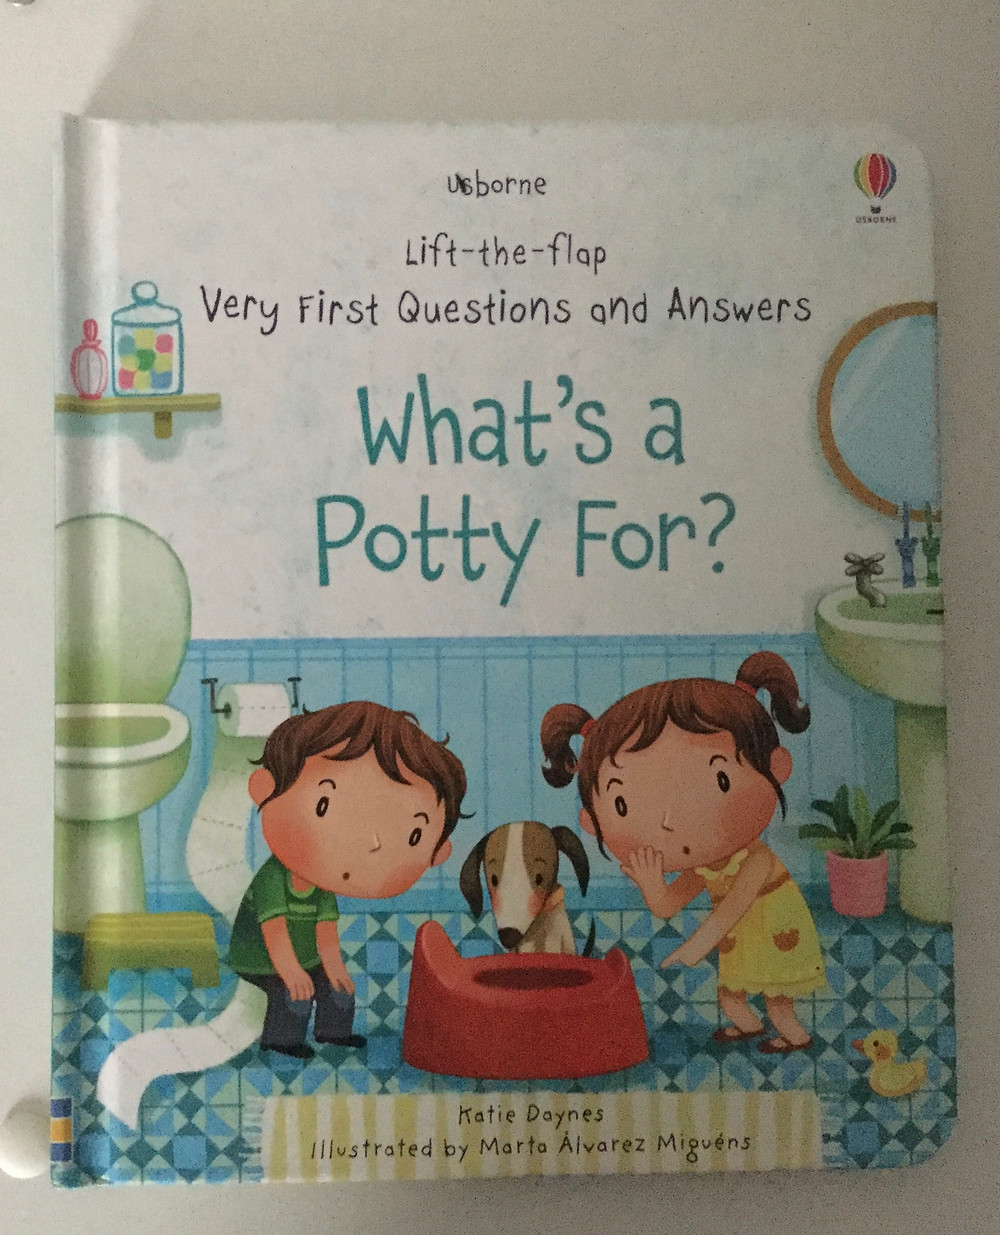 Usborne Book What's a Potty For?  Two kids on the front with their dog looking at a potty